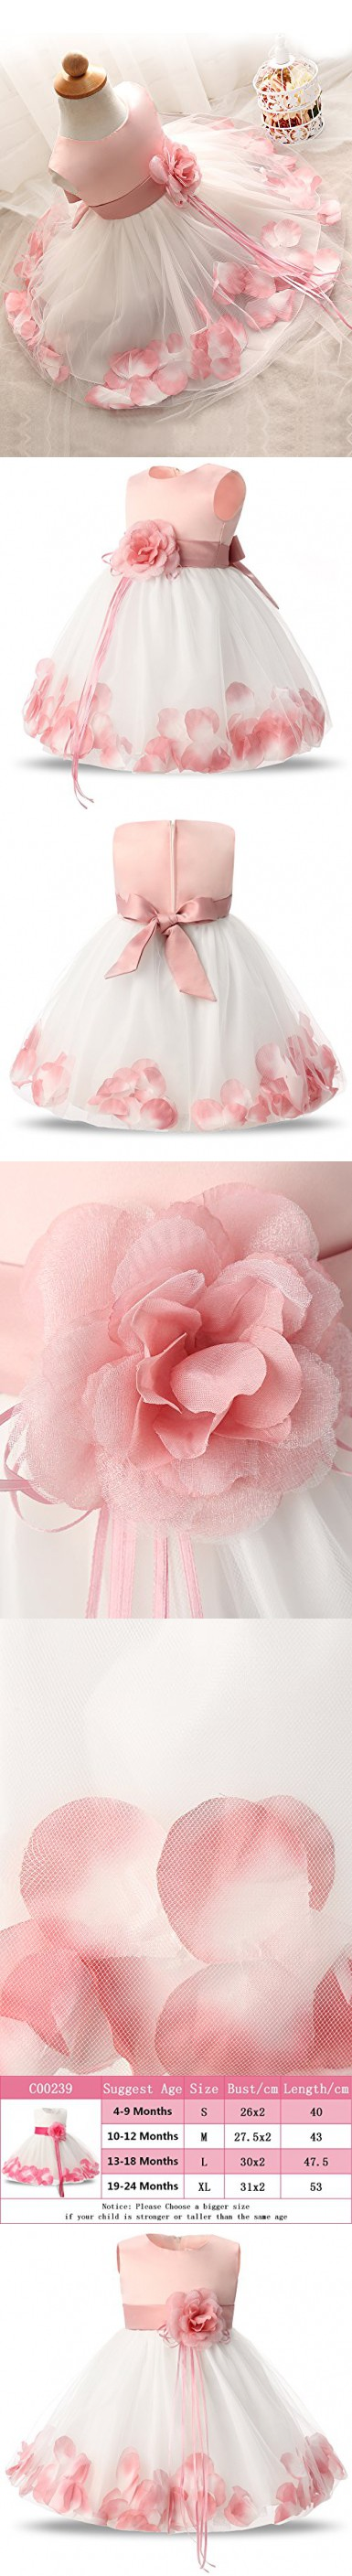 1527cf5b197 NNJXD Girl Tutu Flower Petals Bow Bridal Dress for Toddler Girl Size 4-9  Months